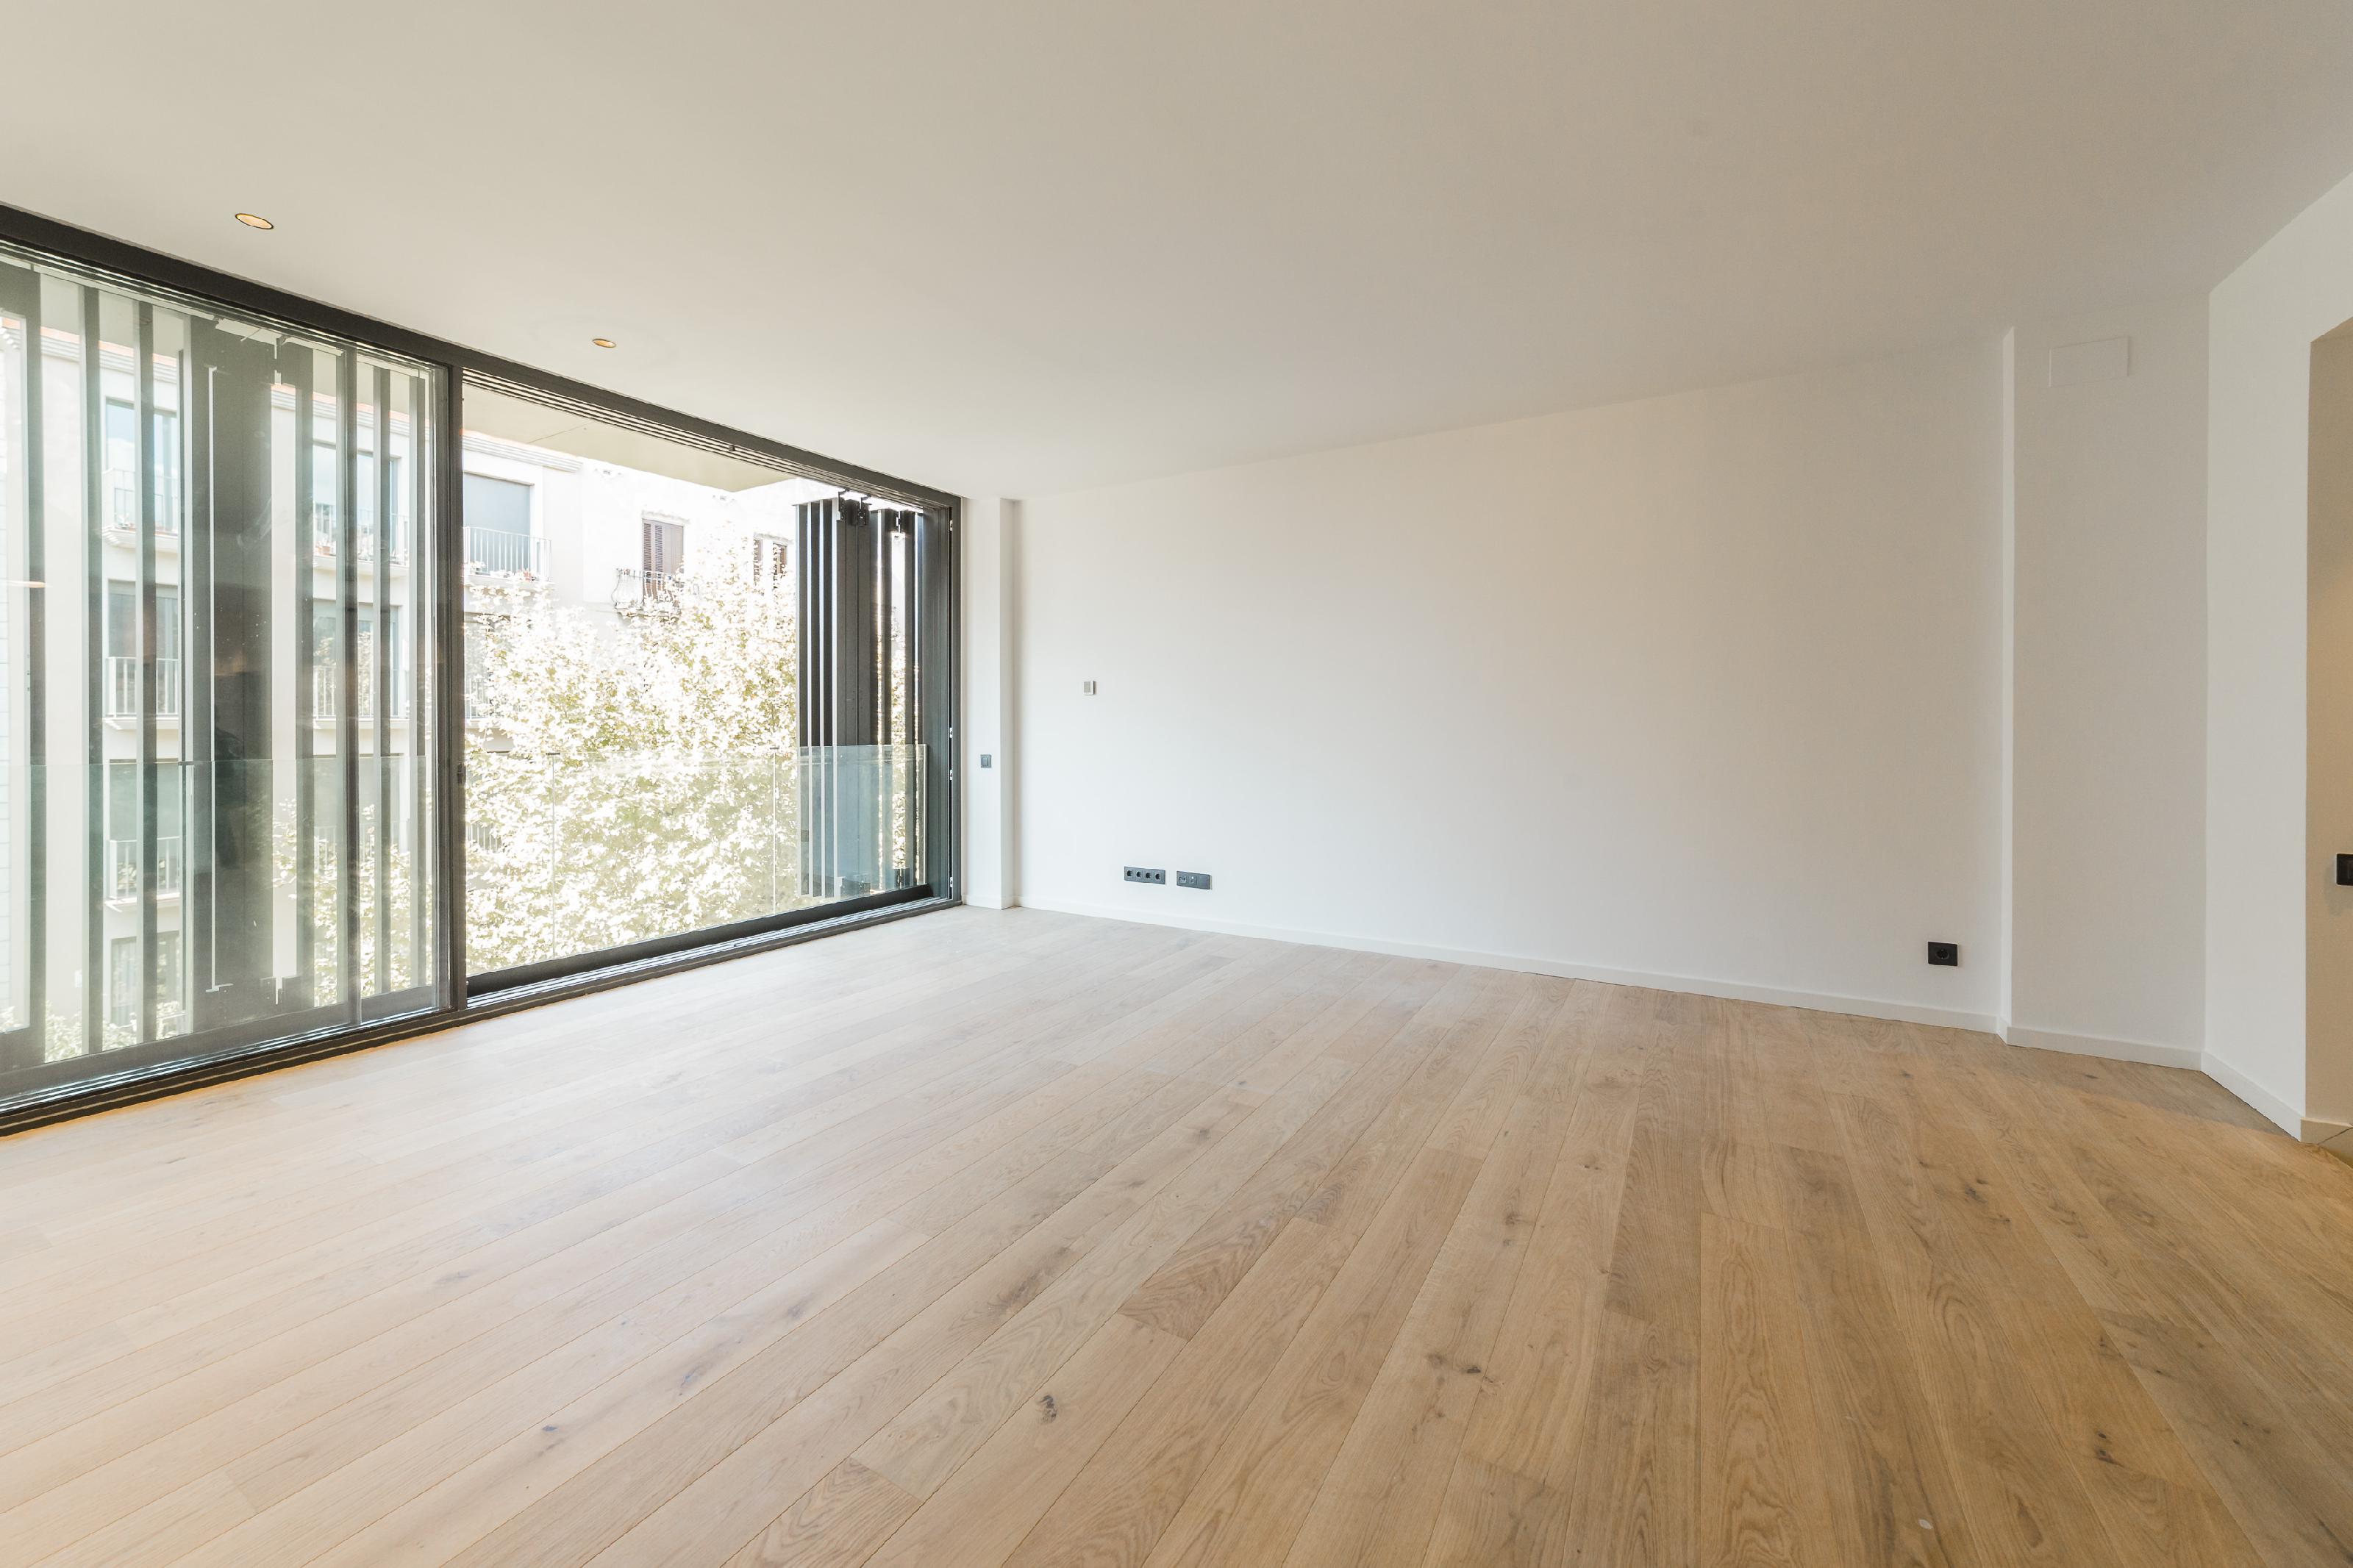 182474 Apartment for sale in Eixample, Old Left Eixample 9